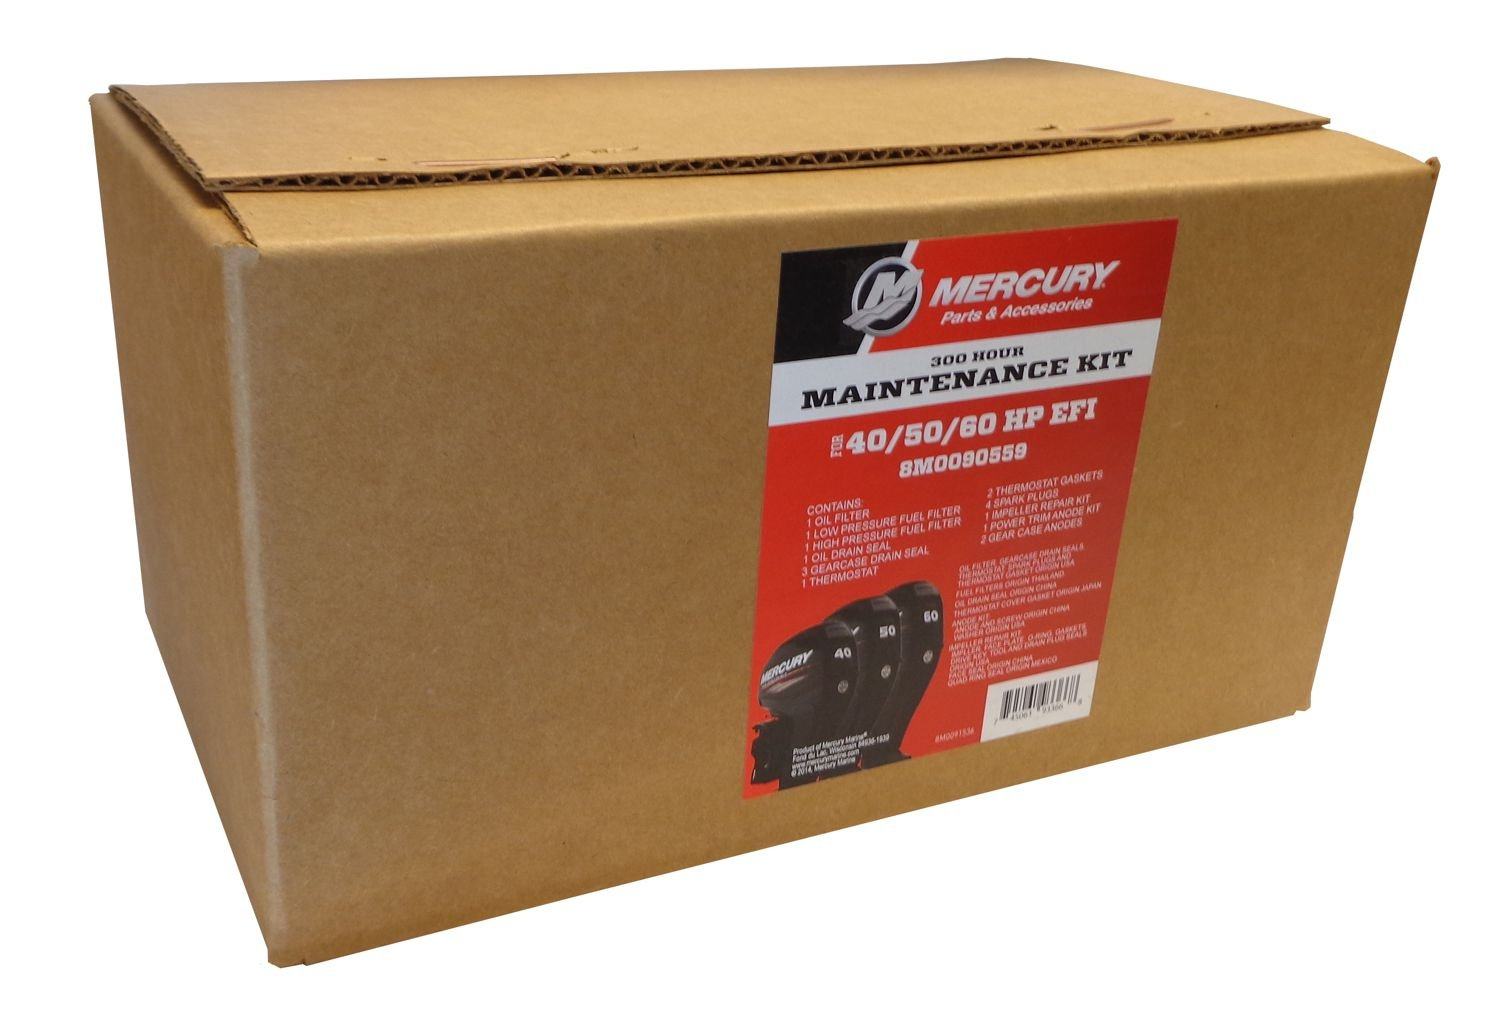 MERCURY OEM 300 Hour Maintenance Kit for 40, 50, 60 HP EFI Outboards  8M0090559